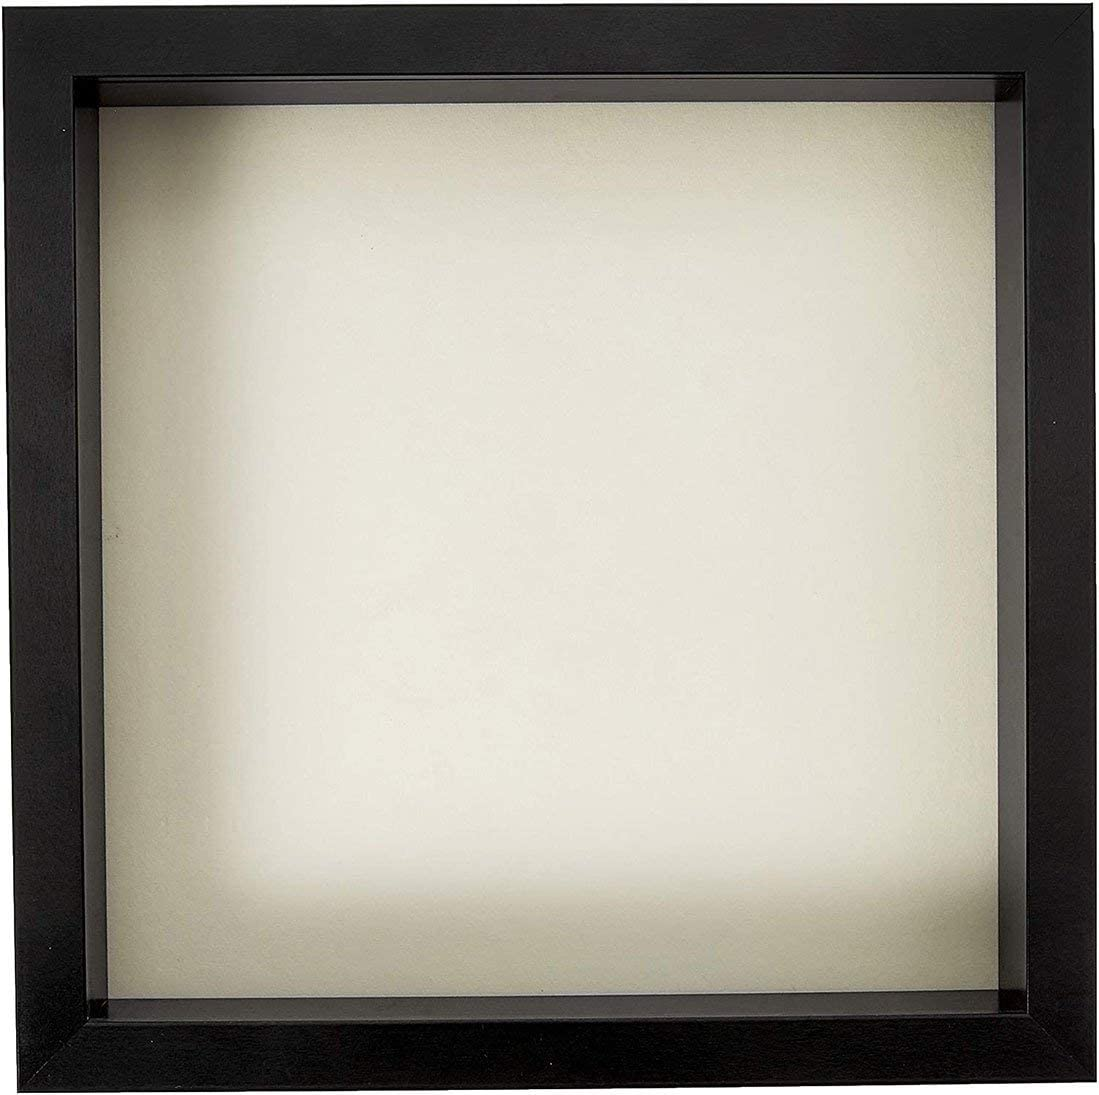 flag connections 11x11 Black Shadow Box Linen Popular overseas Ba Frame Soft 70% OFF Outlet with